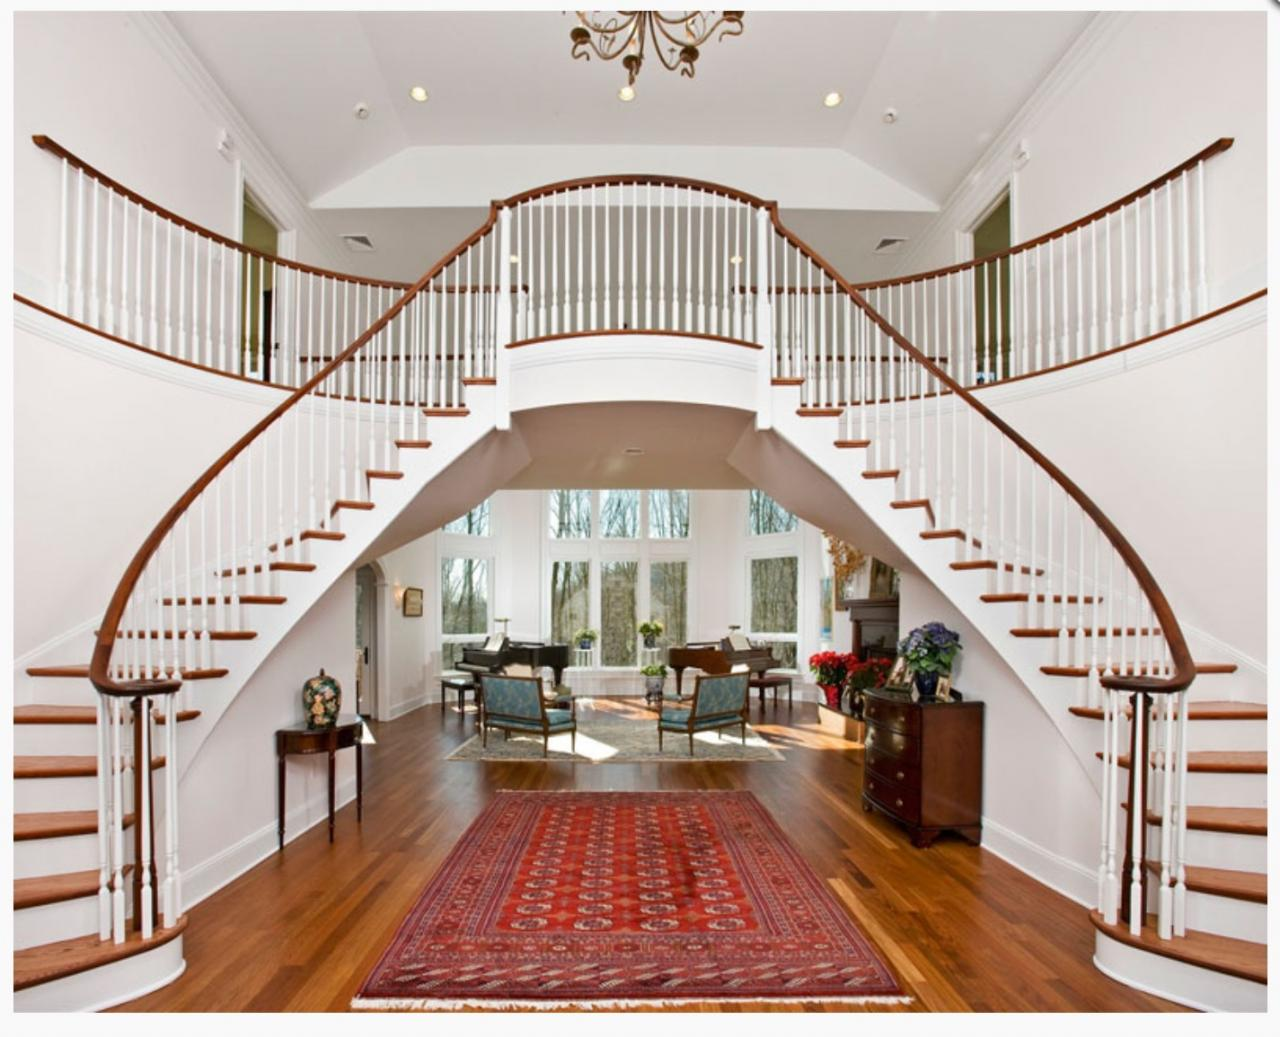 D s g k drywall llc gallery for Double curved staircase